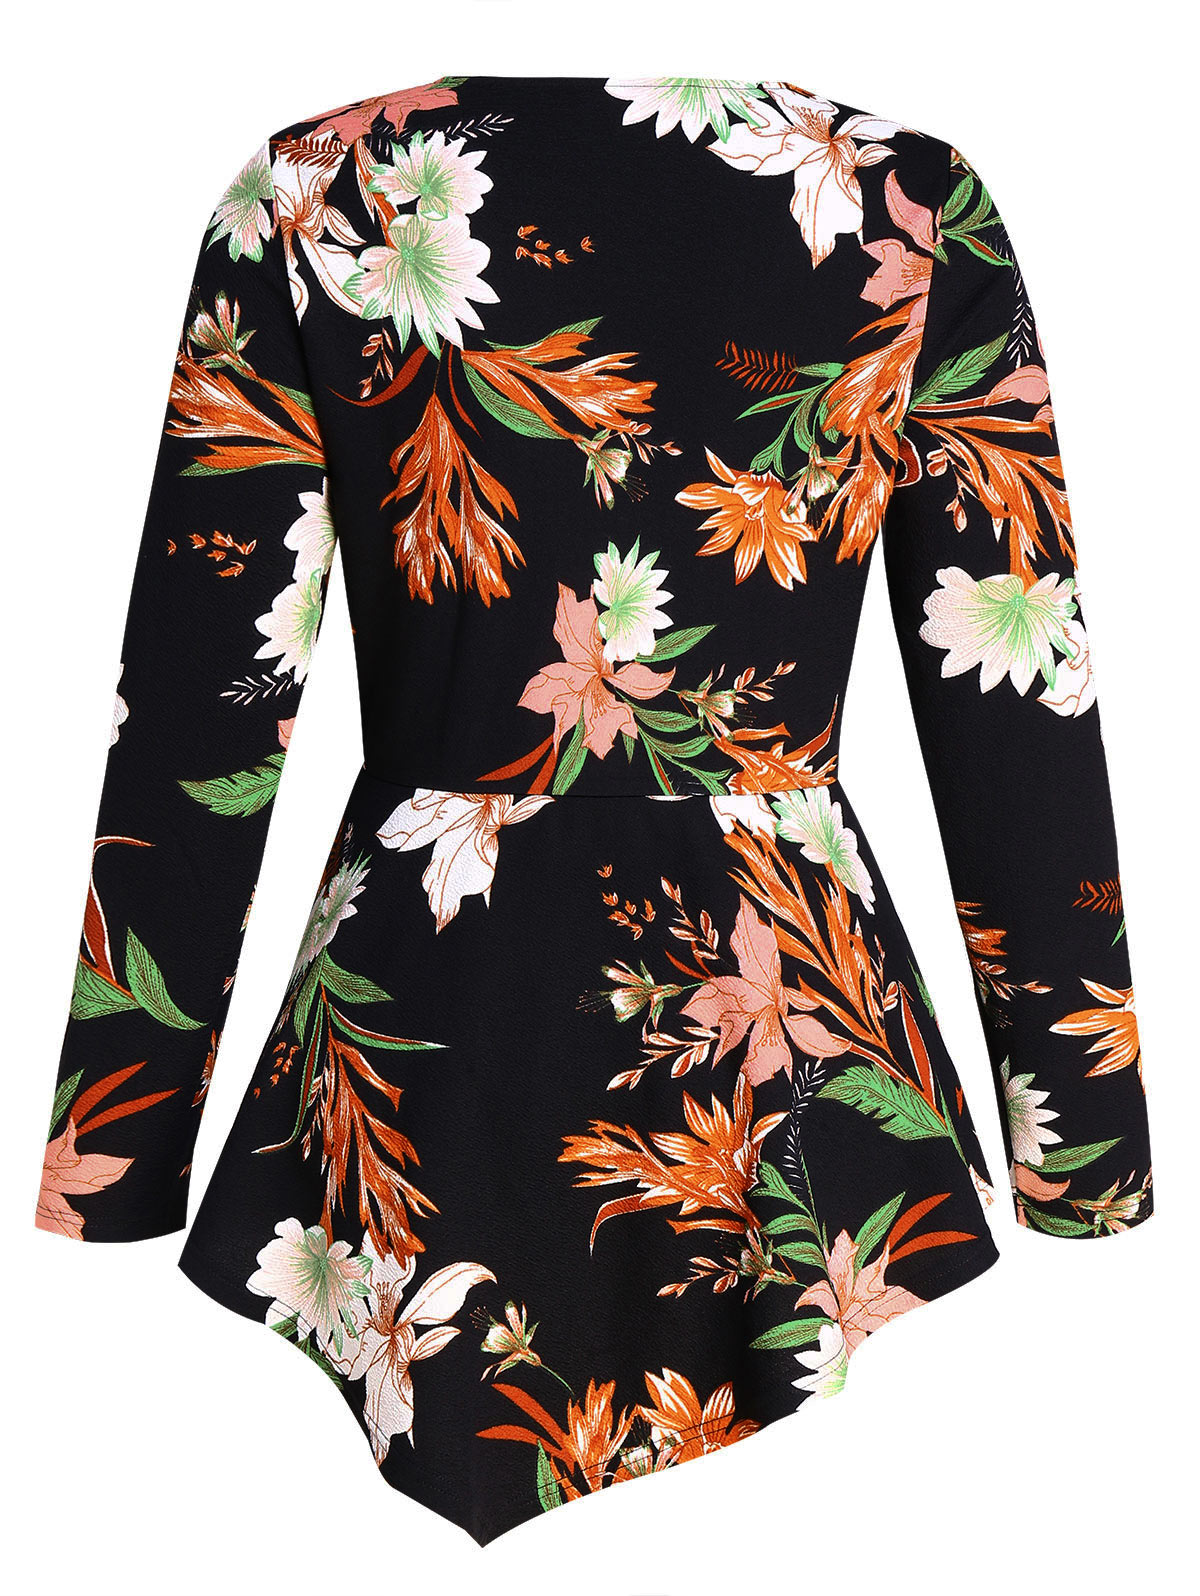 Witspace Womens V Neck Holiday Floral Print Blouse Ladies Short Sleeve Tops Black